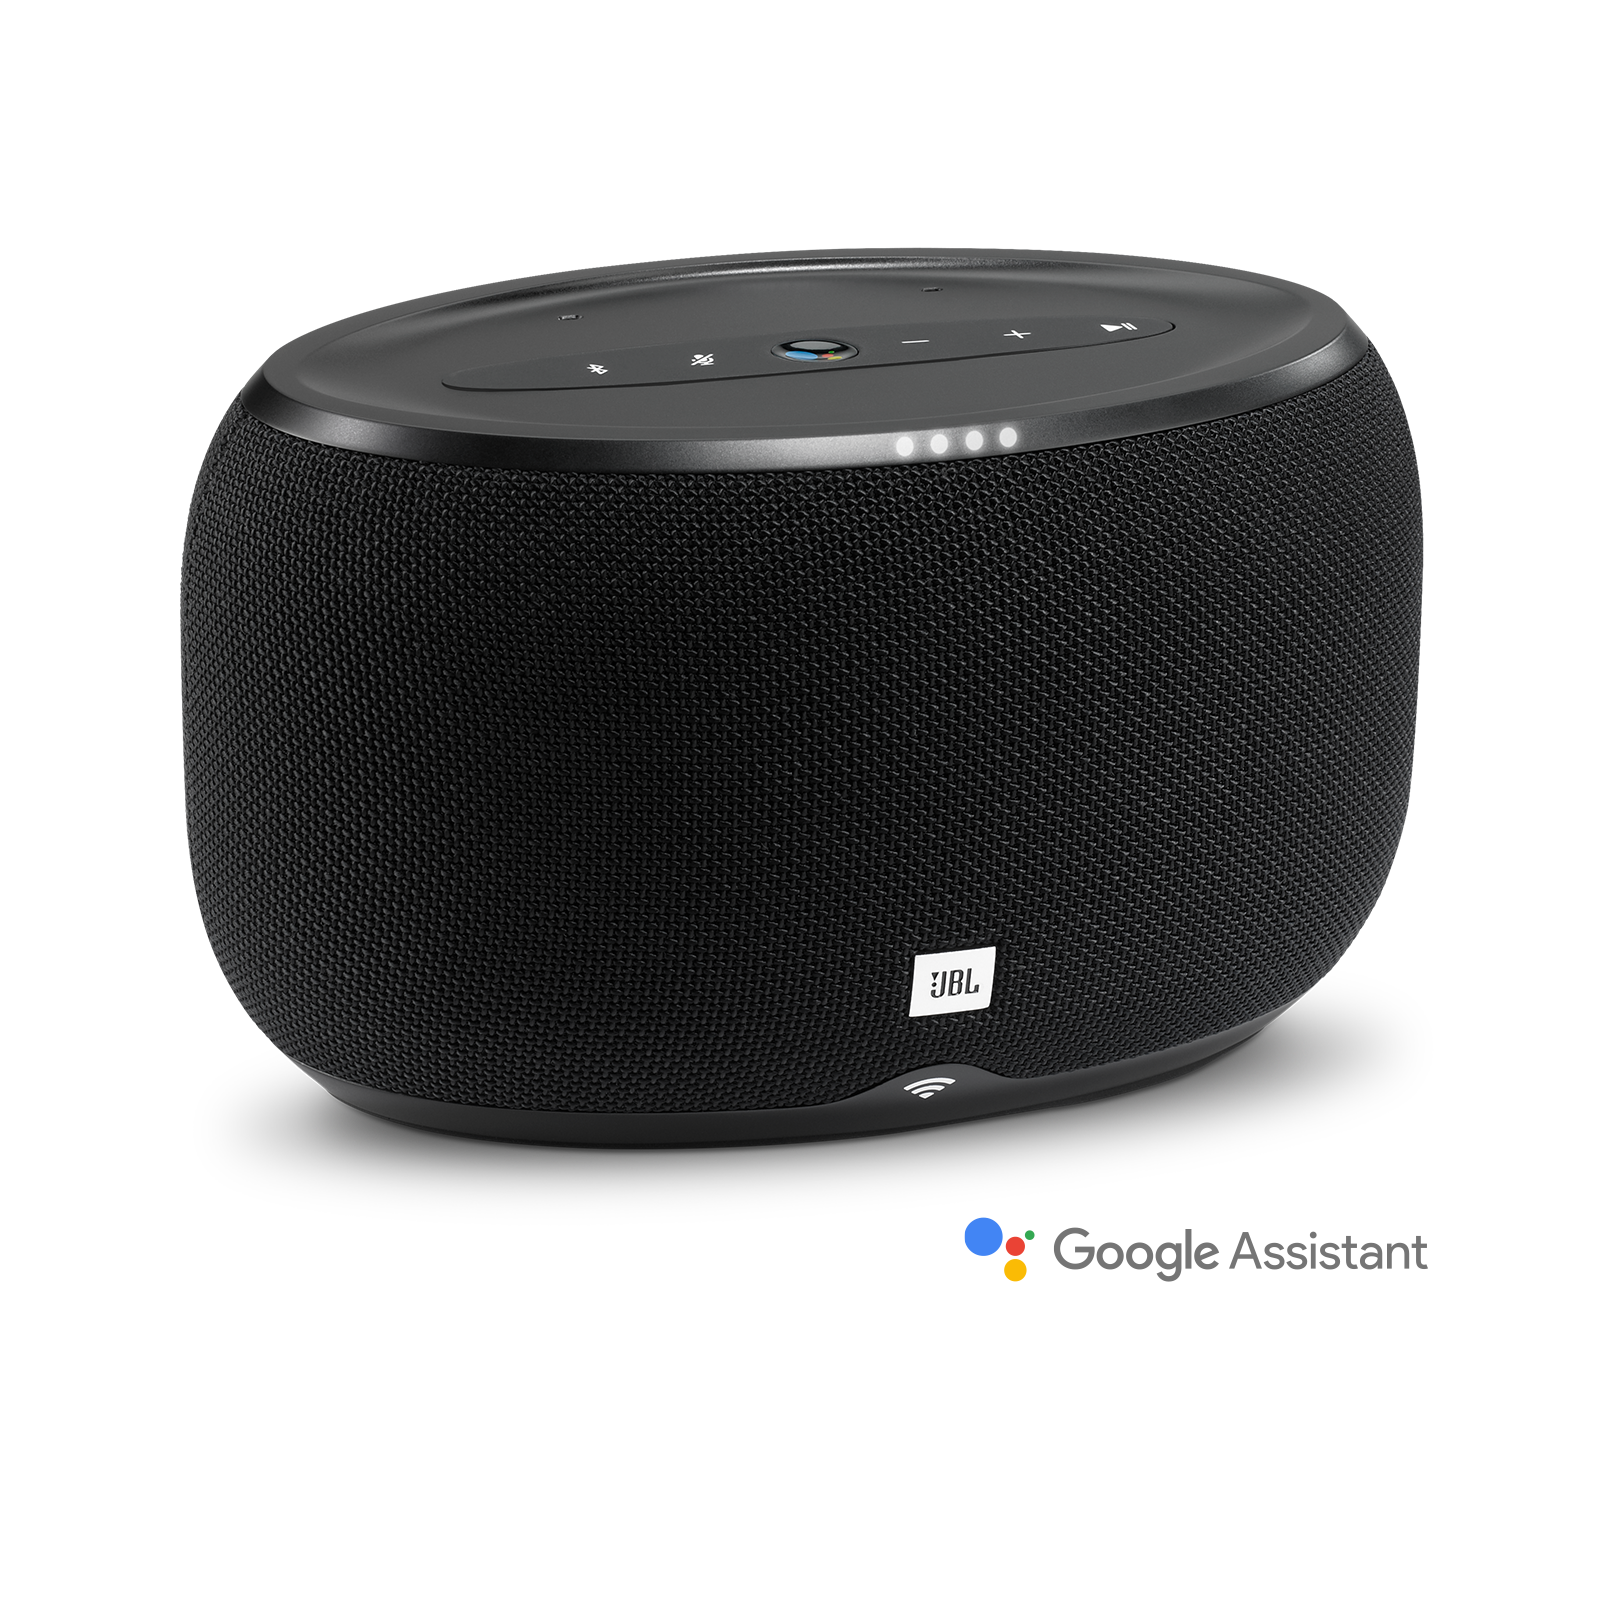 JBL Link 300 - Black - Voice-activated speaker - Hero